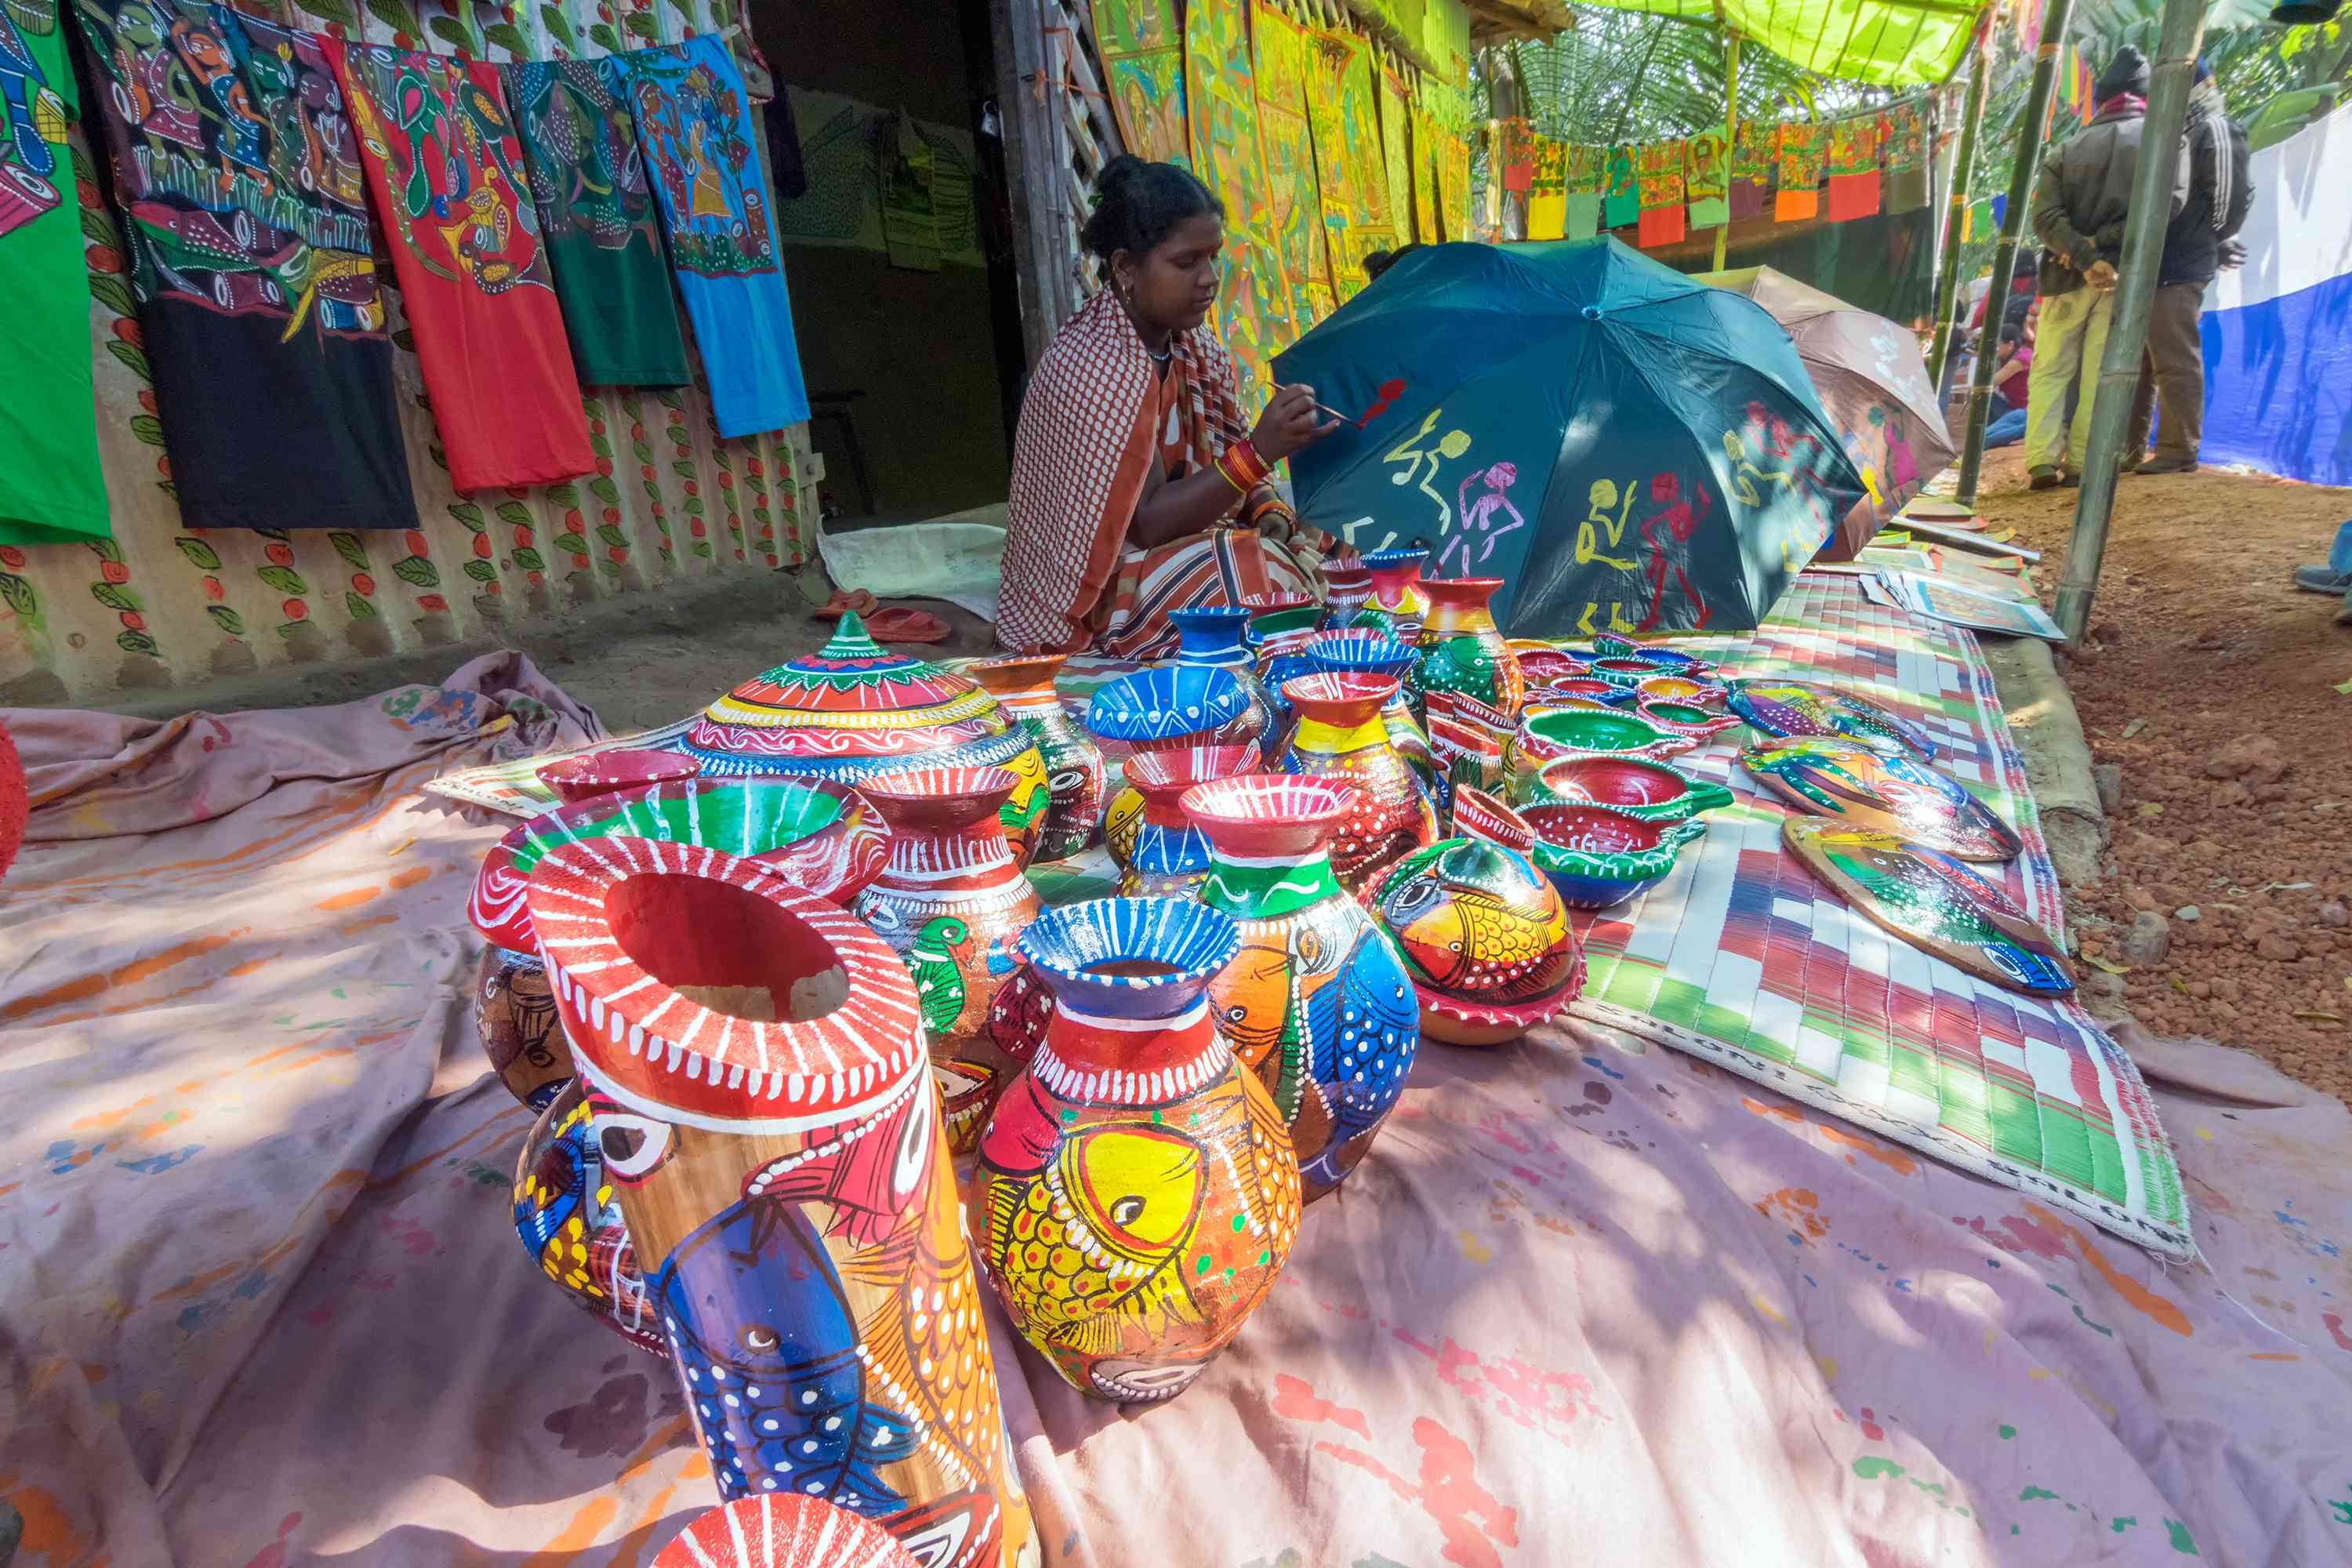 Handicrafts are being prepared for sale Pingla, West Bengal.